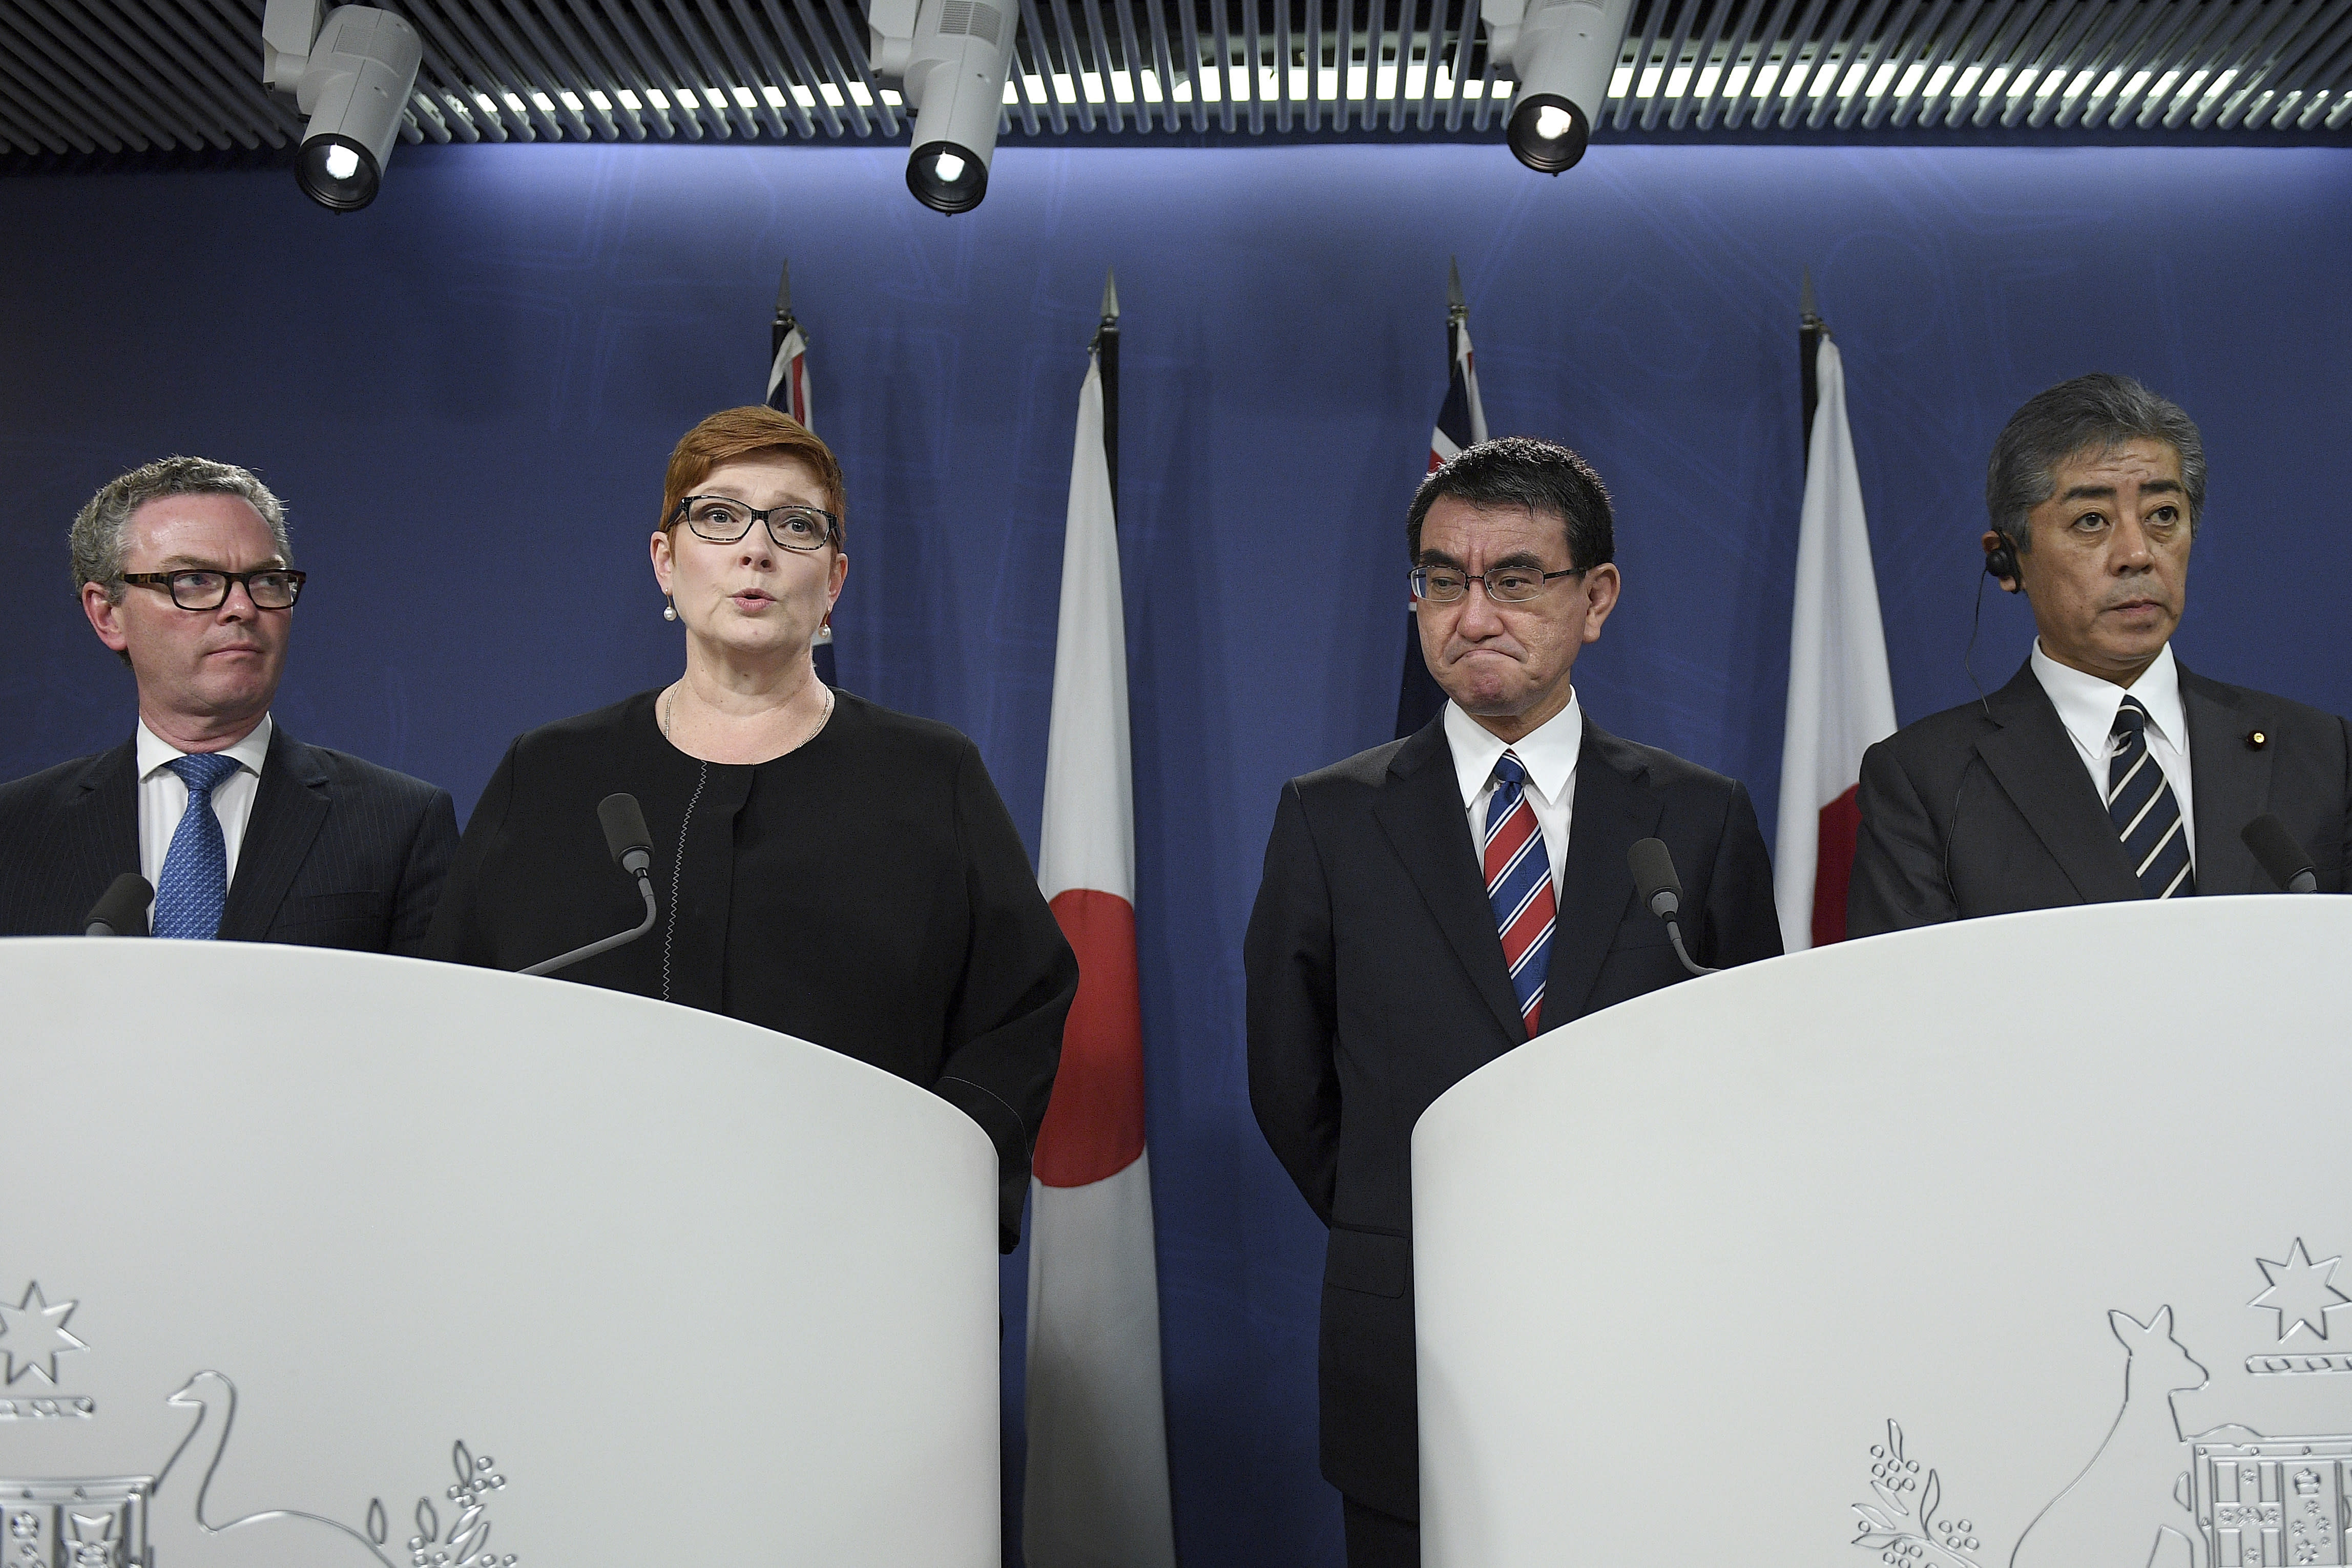 Australian Foreign Minister Marise Payne, second from left, speaks as Australian Defense Minister Christopher Pyne, left, Japanese Foreign Minister Taro Kono, second from right, and Japanese Defense Minister Takeshi Iwaya listen during a joint press conference in Sydney, Wednesday, Oct. 10, 2018. Australia and Japan on Wednesday reaffirmed their commitment to pressuring North Korea to abandon its nuclear weapons program and enforcing sanctions on Pyongyang. (Dan Himbrechts/AAP Images via AP)